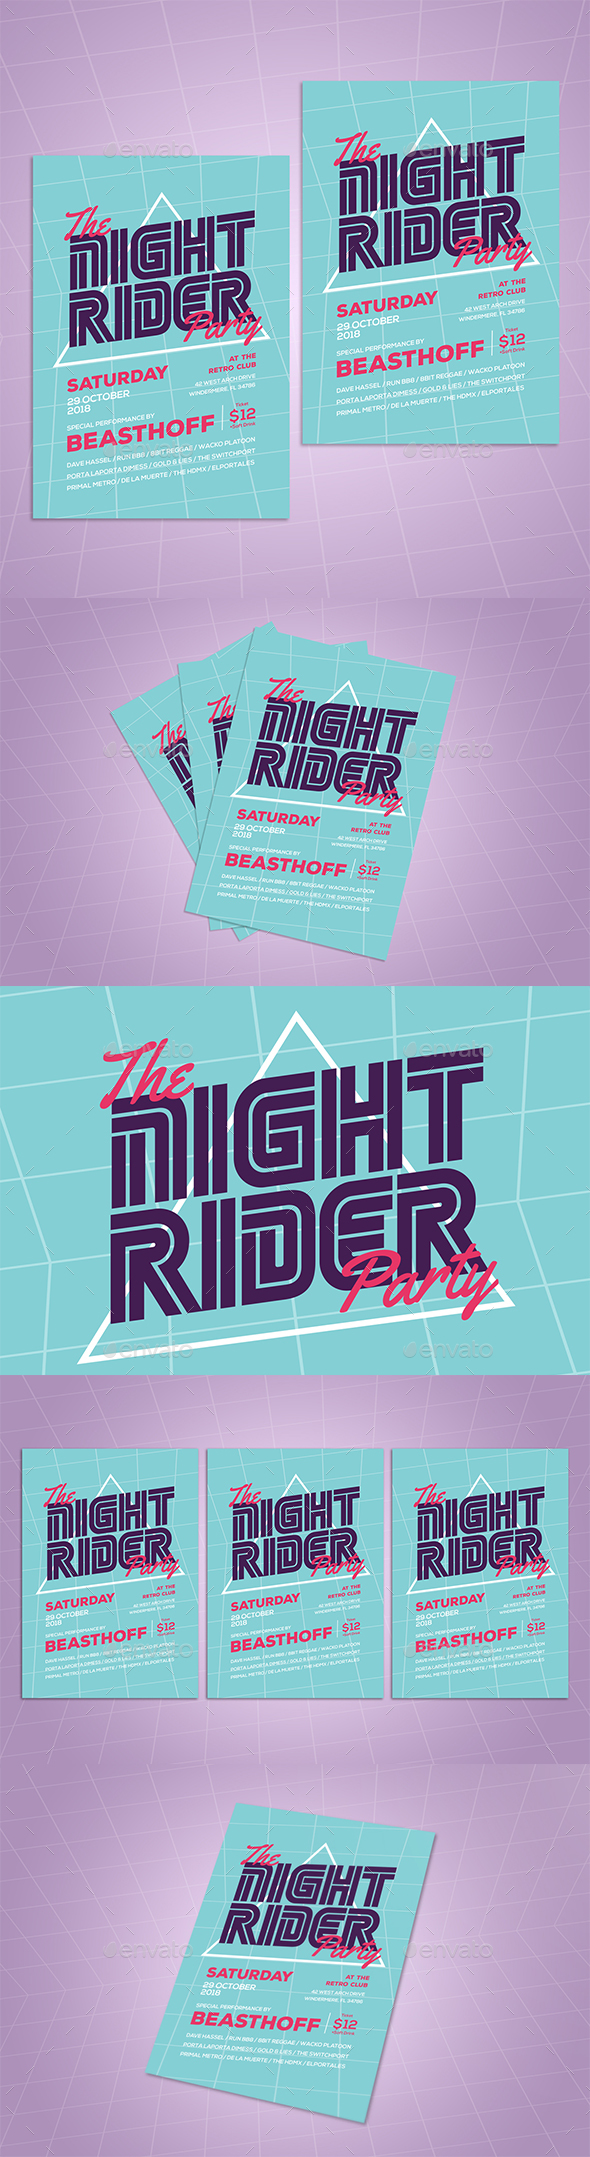 Retro Music Flyer - Events Flyers